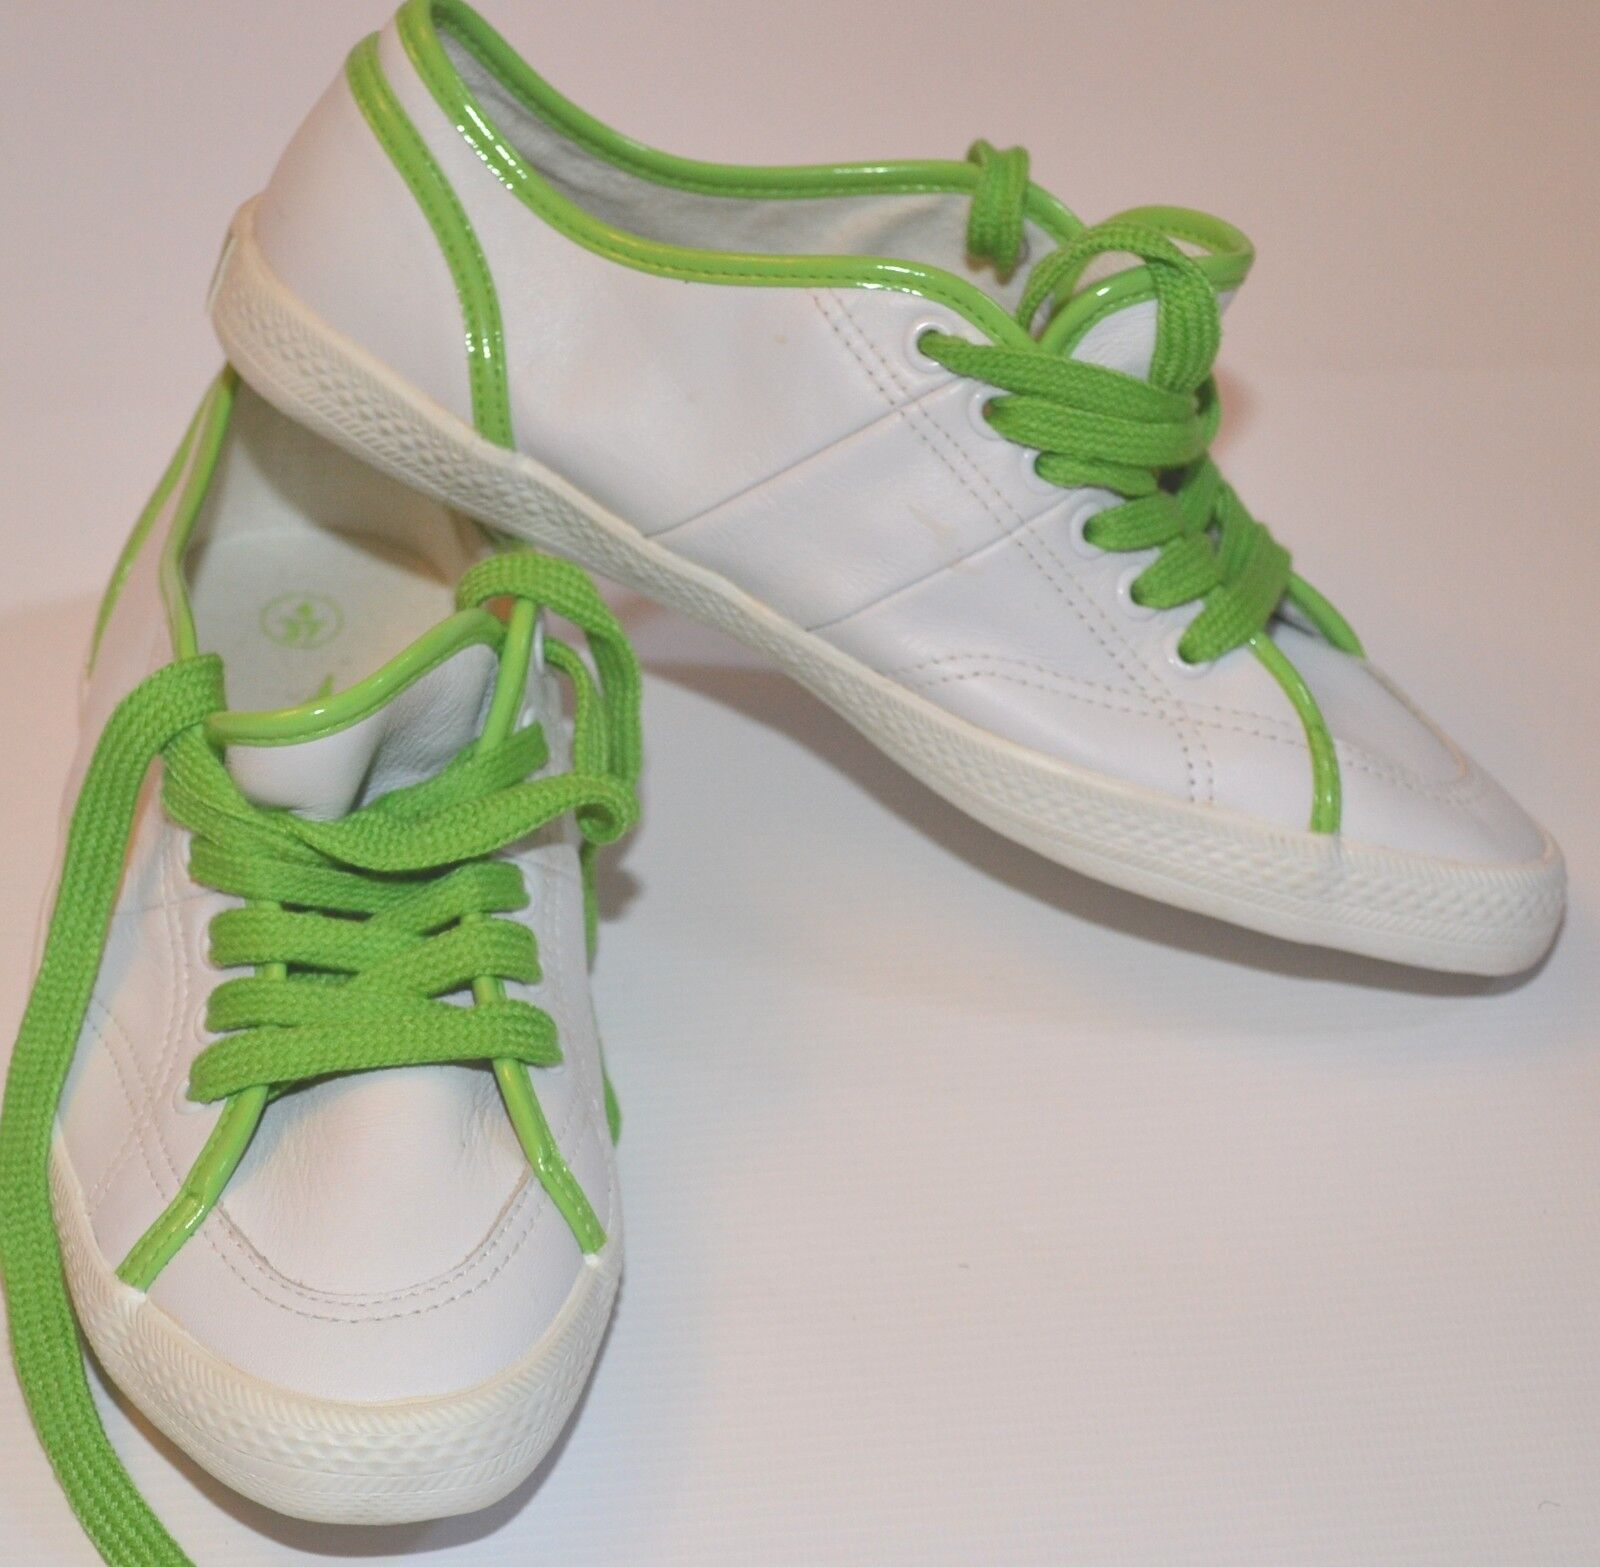 WHITE LEATHER   GREEN LACE-UP GOLA SNEAKER TRAINER TENNIS SHOE US 6 EURO 37